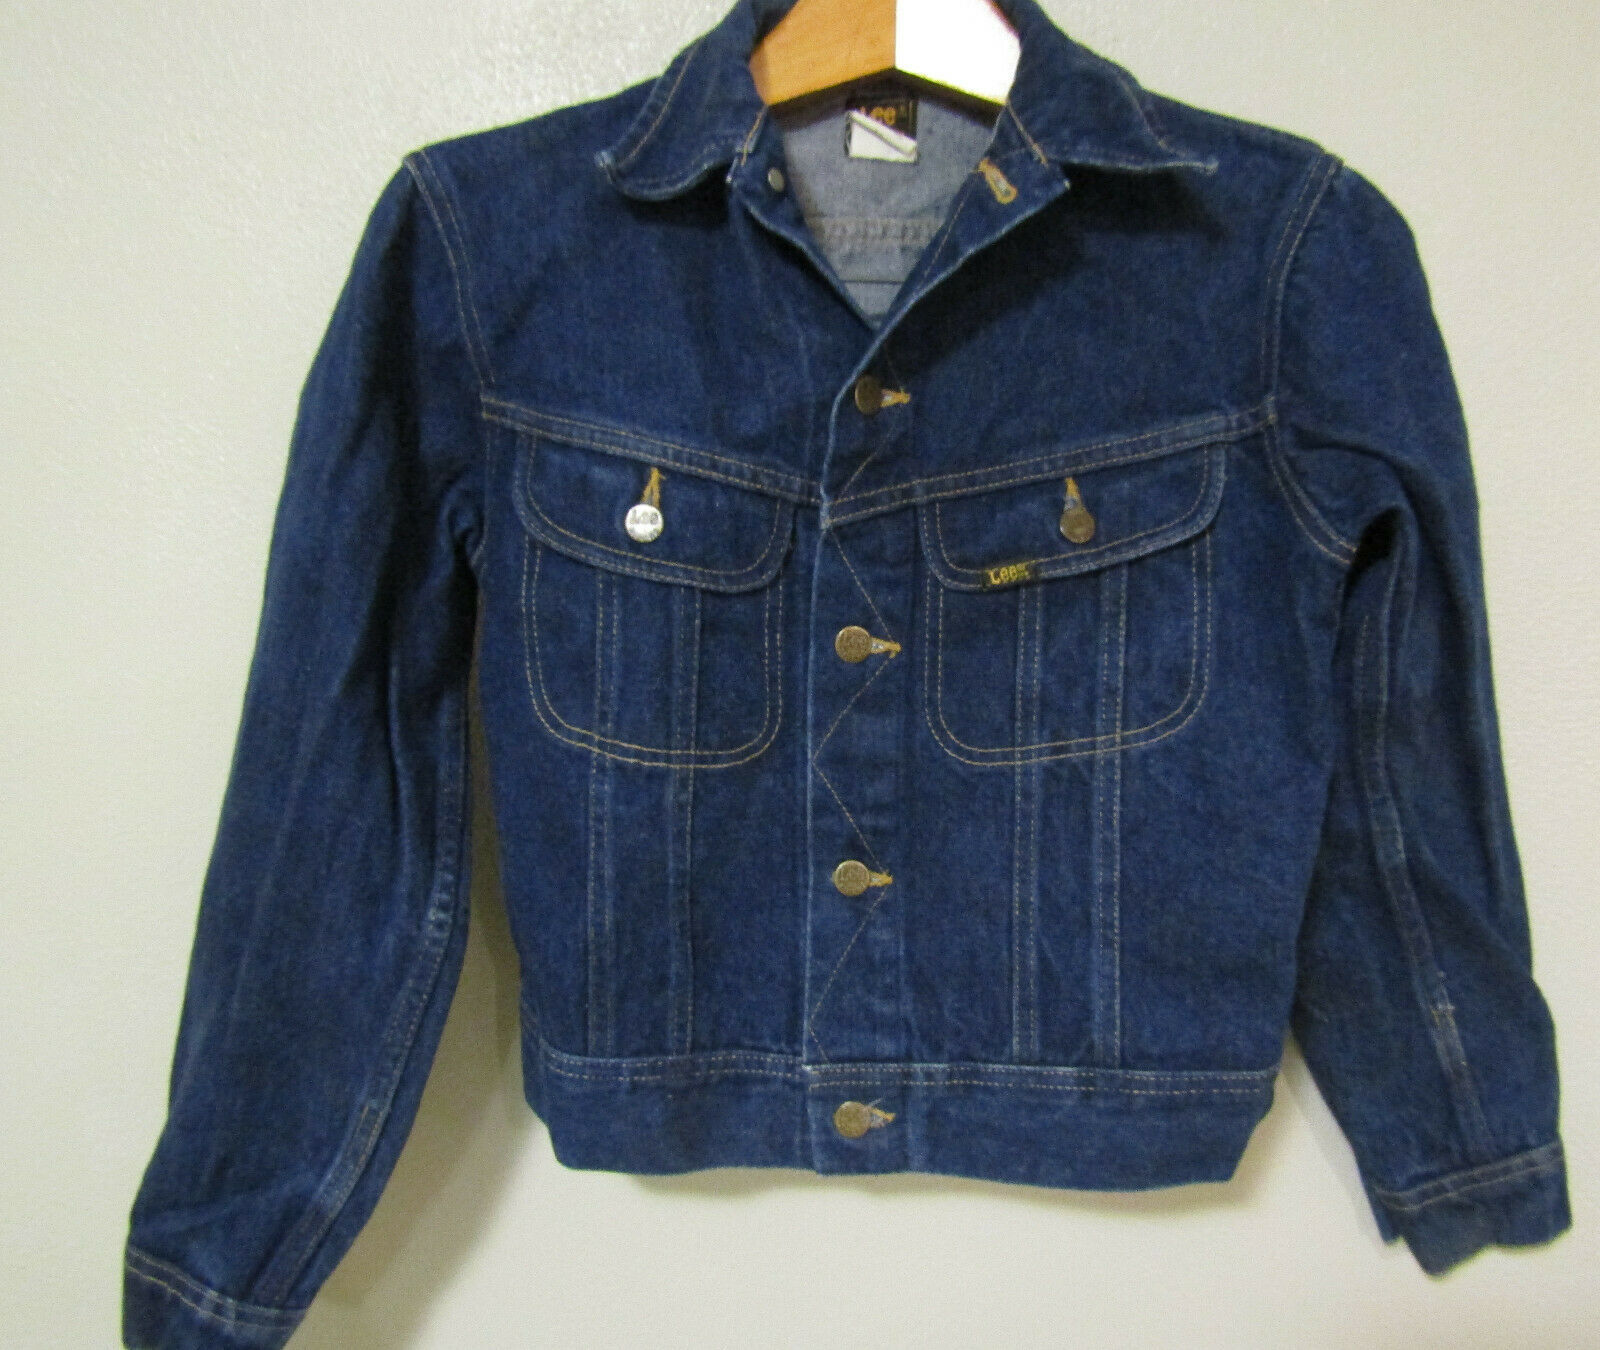 Primary image for Vintage Lee Riders Denim Blue Jeans Jacket Size 16 Boys 100% Cotton Made In USA